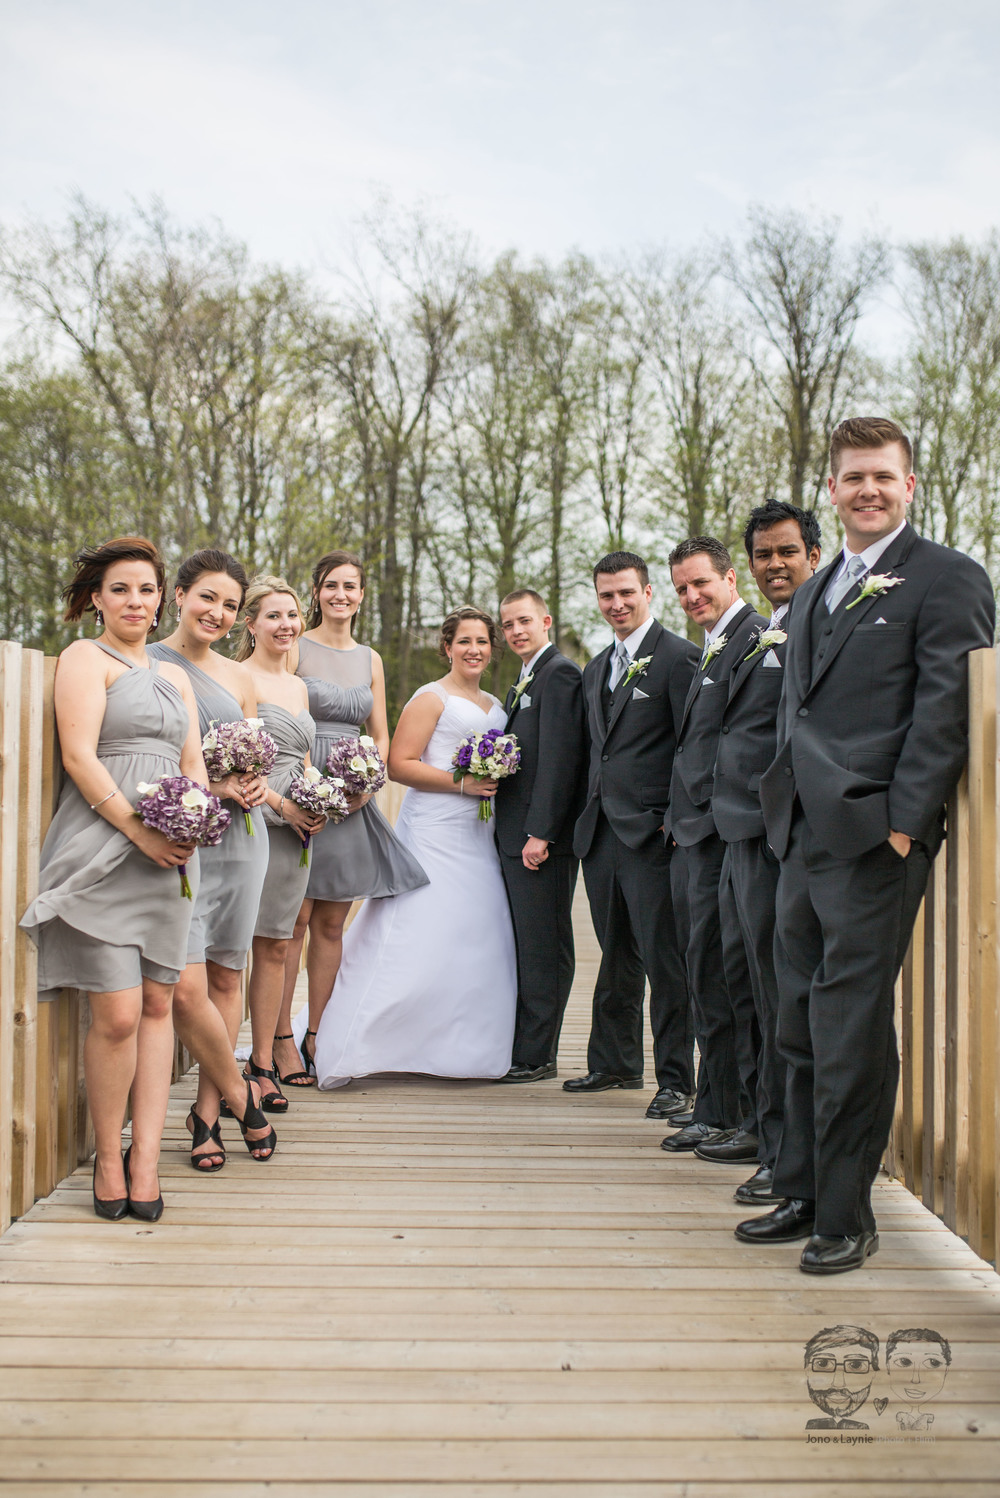 30Toronto Wedding Photographers and Videographers-Jono & Laynie Co.-Orangeville Wedding.jpg